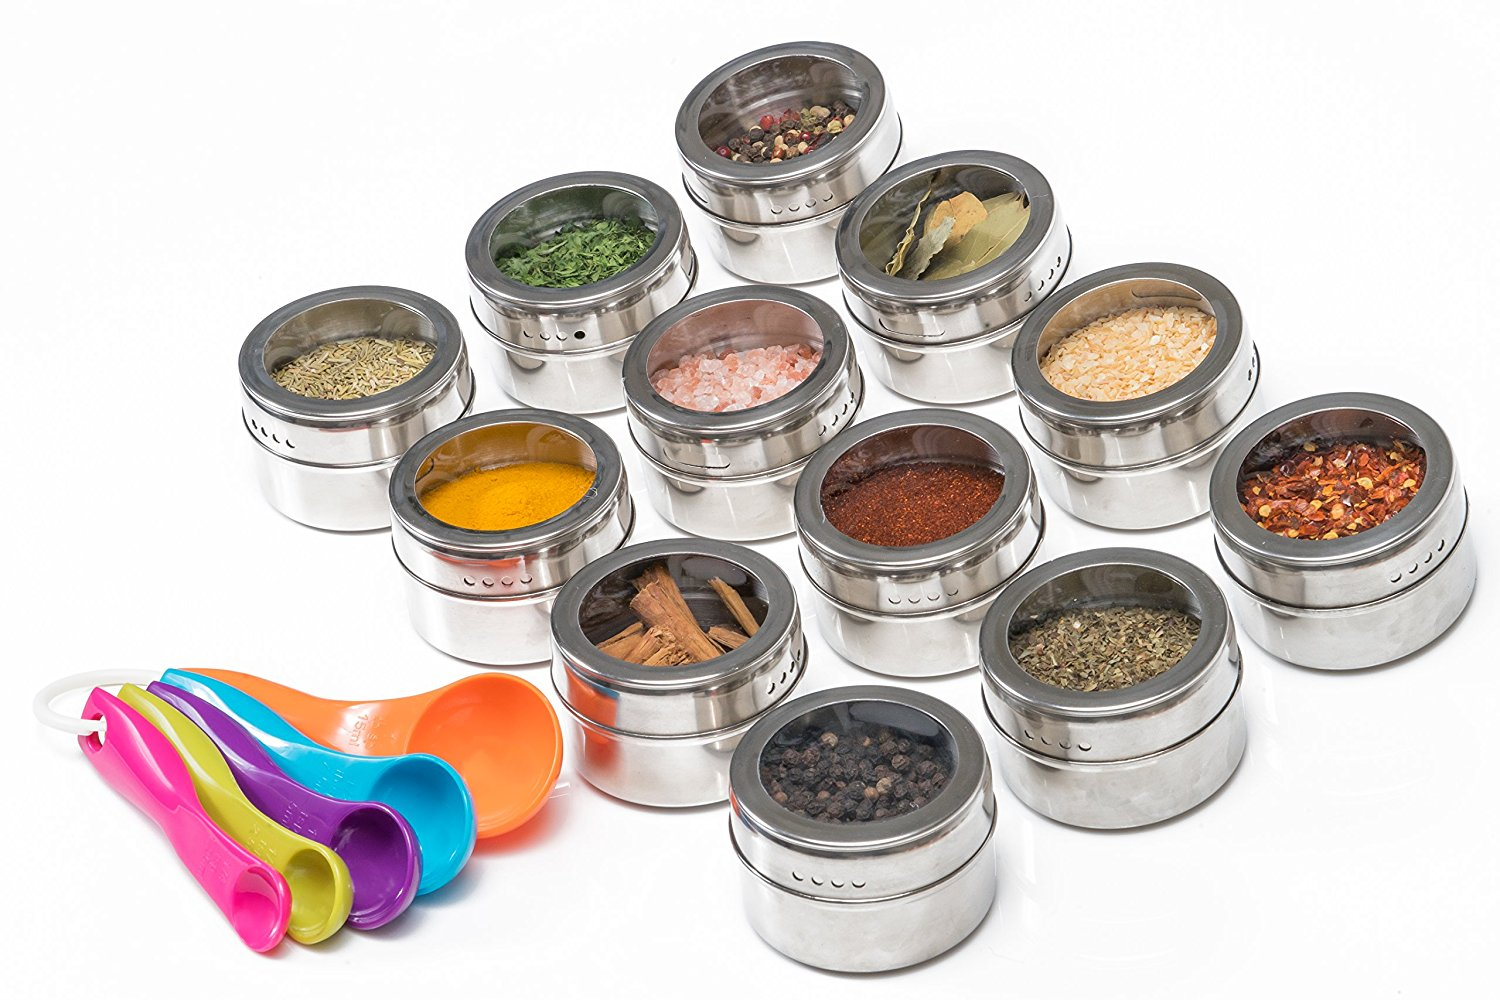 Delightful Nellam Spice Rack Magnetic Storage Jars For Spices   12 Pcs Stainless Steel  Kitchen Containers With